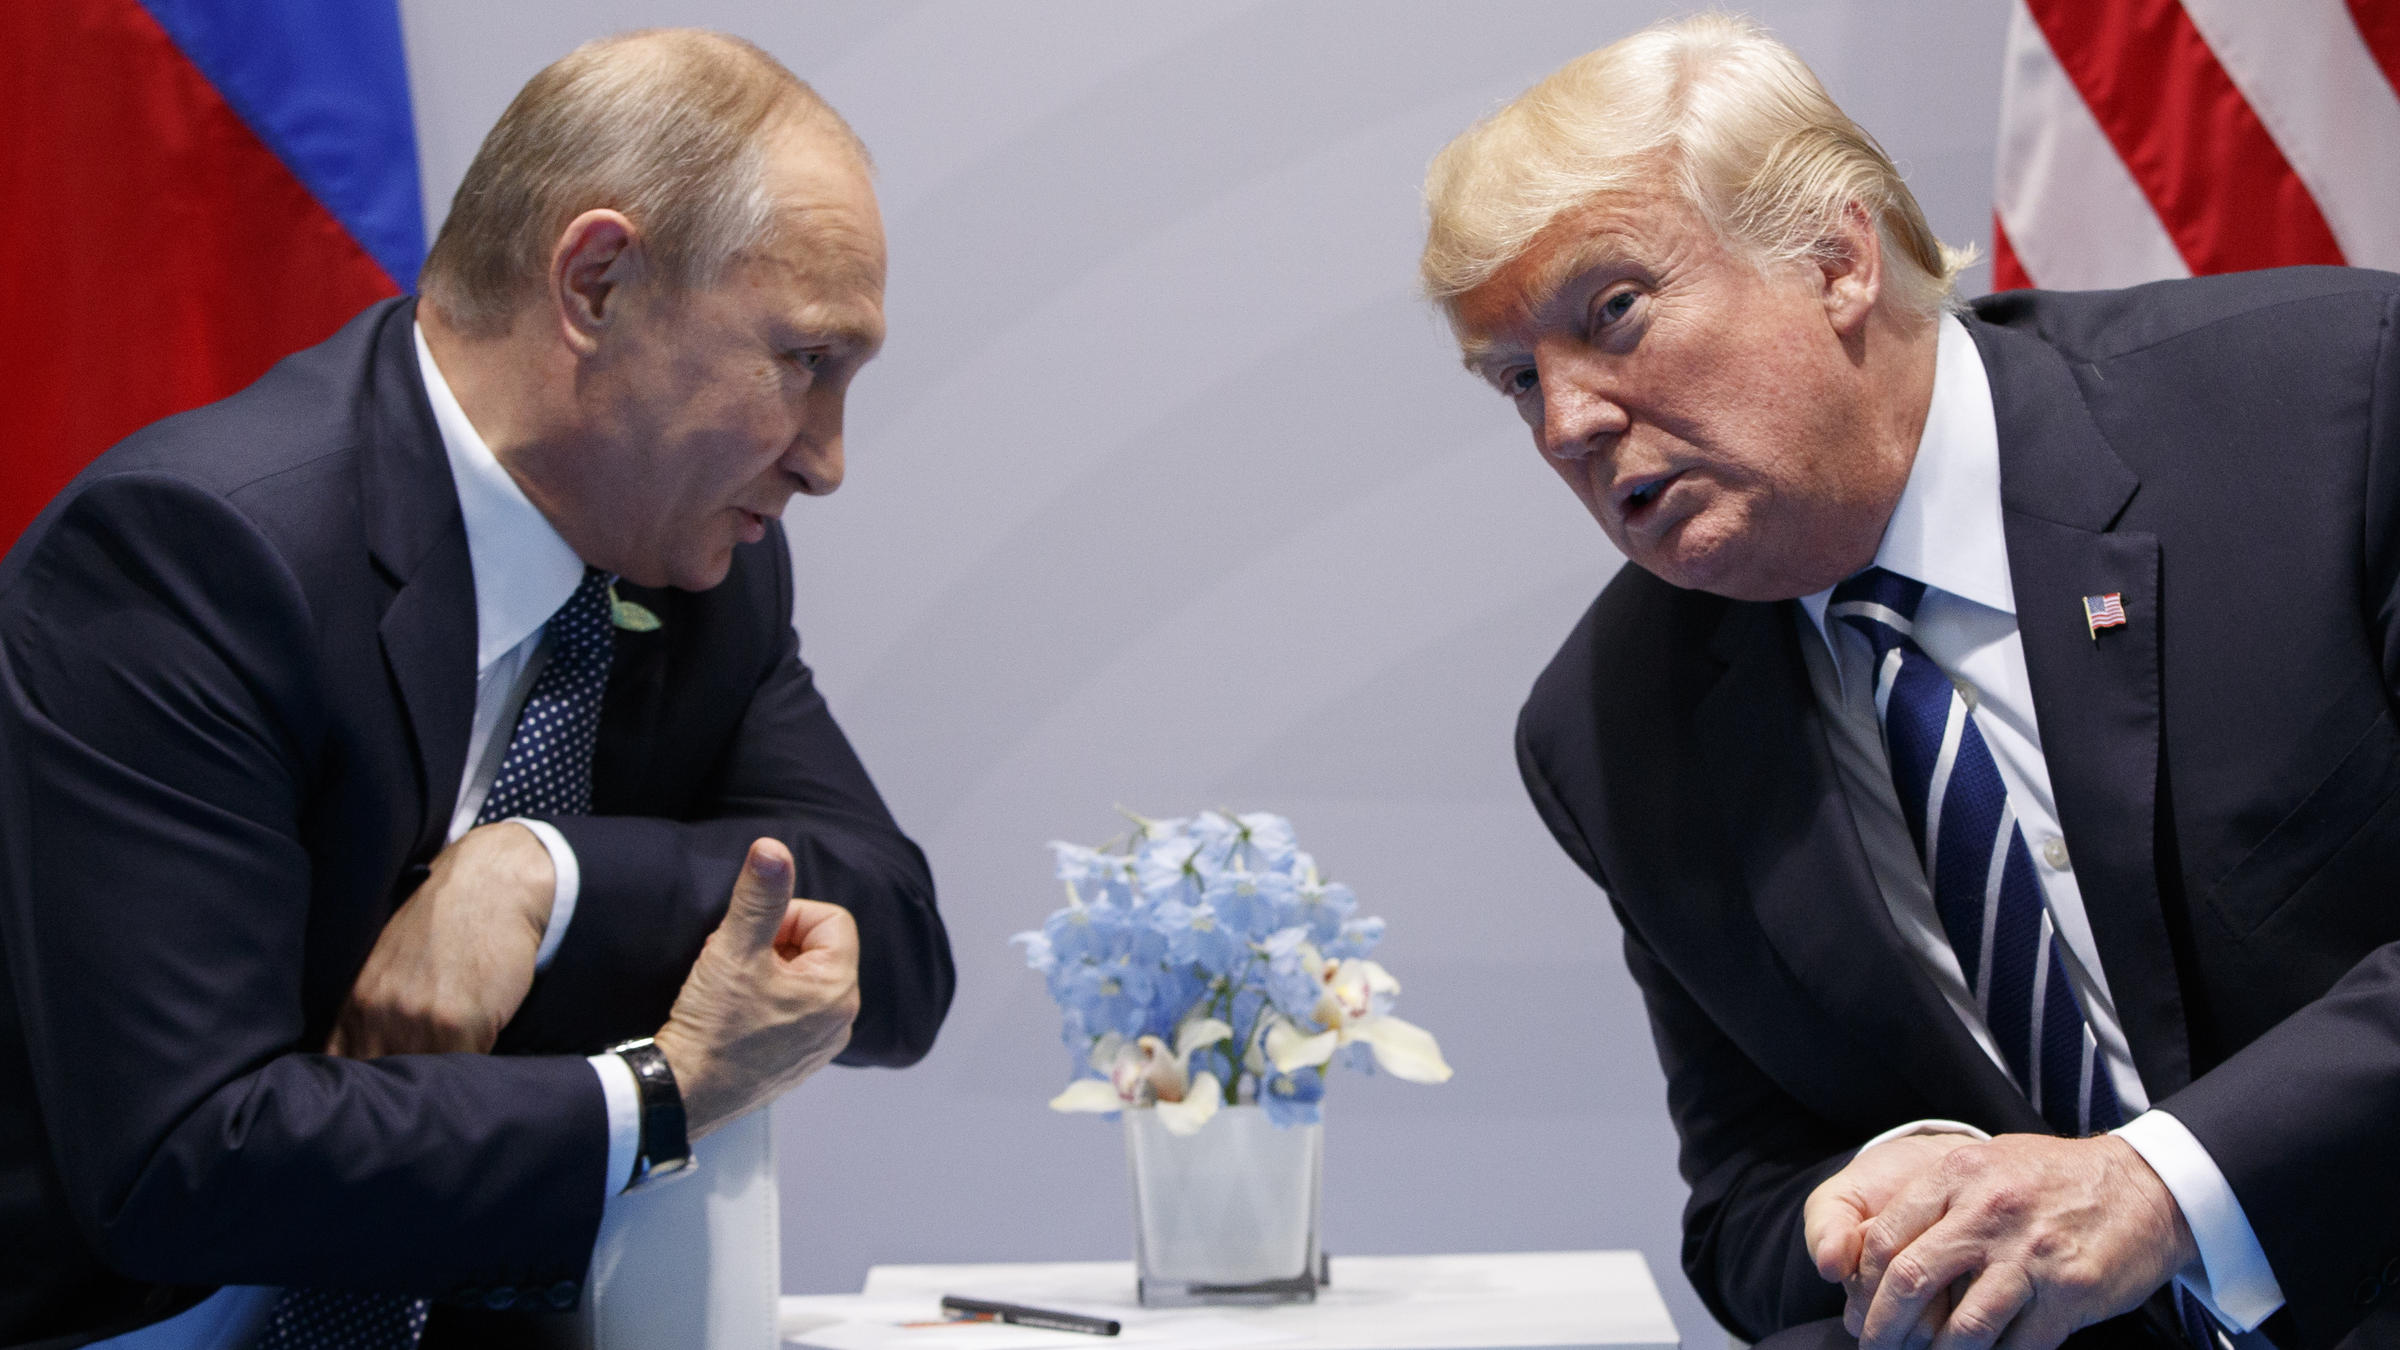 Trump signs sanctions against Russia as punishment for election meddling